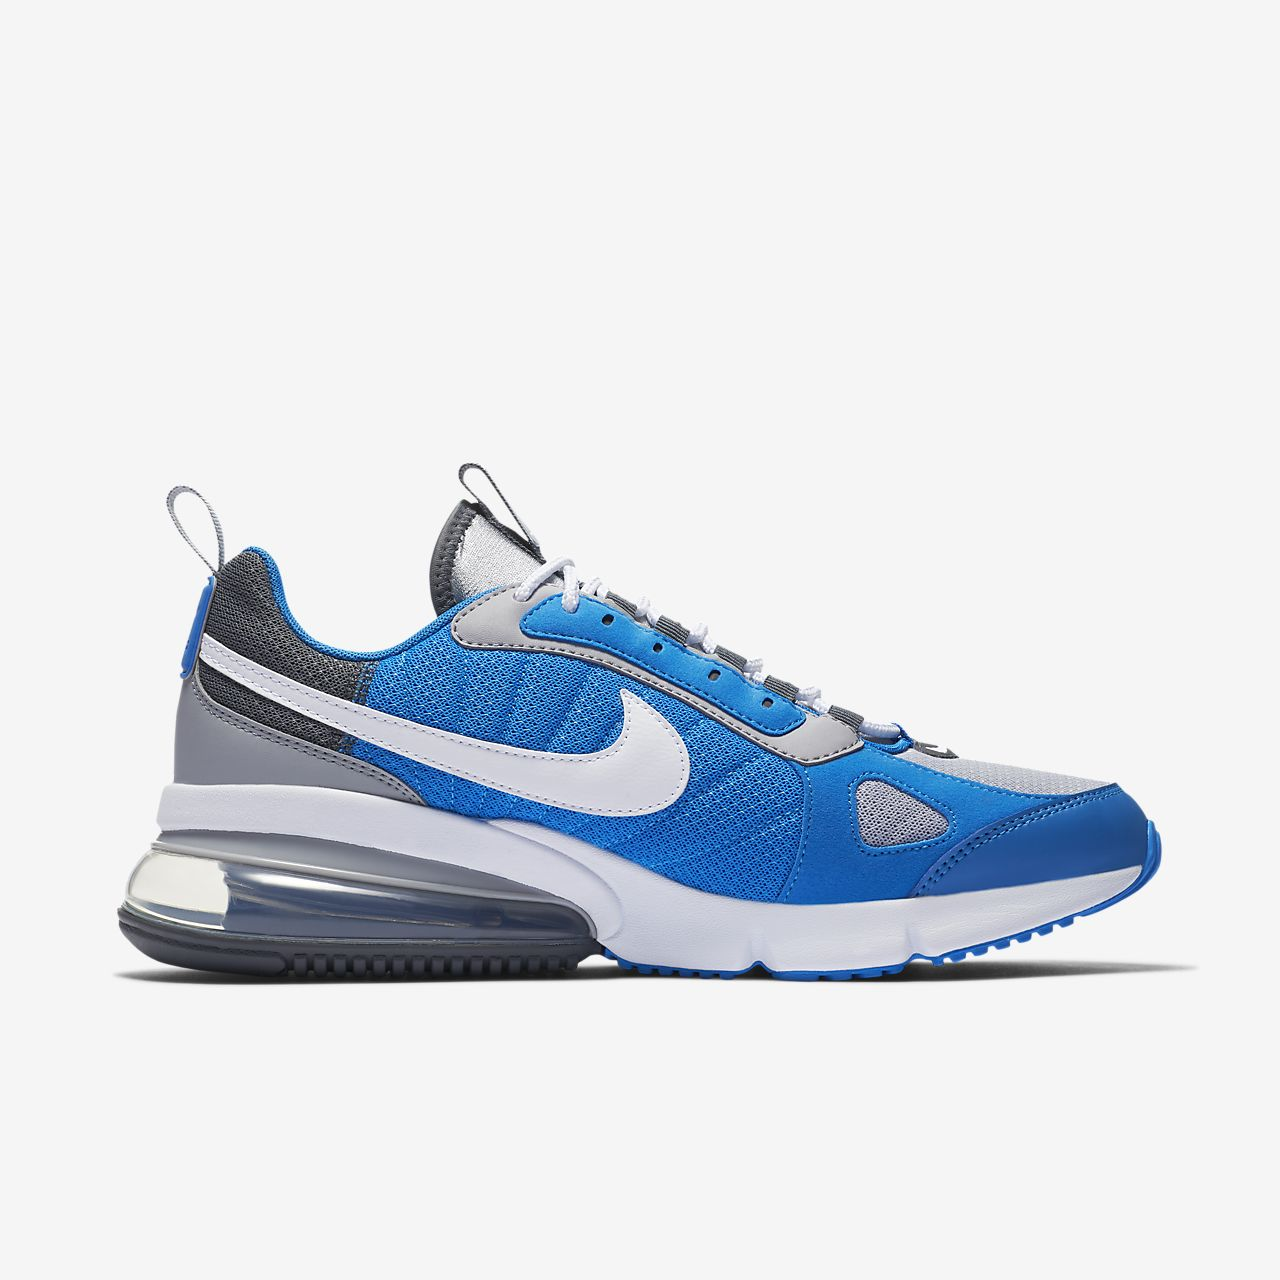 finest selection 6b40e 8f945 ... Chaussure Nike Air Max 270 Futura pour Homme